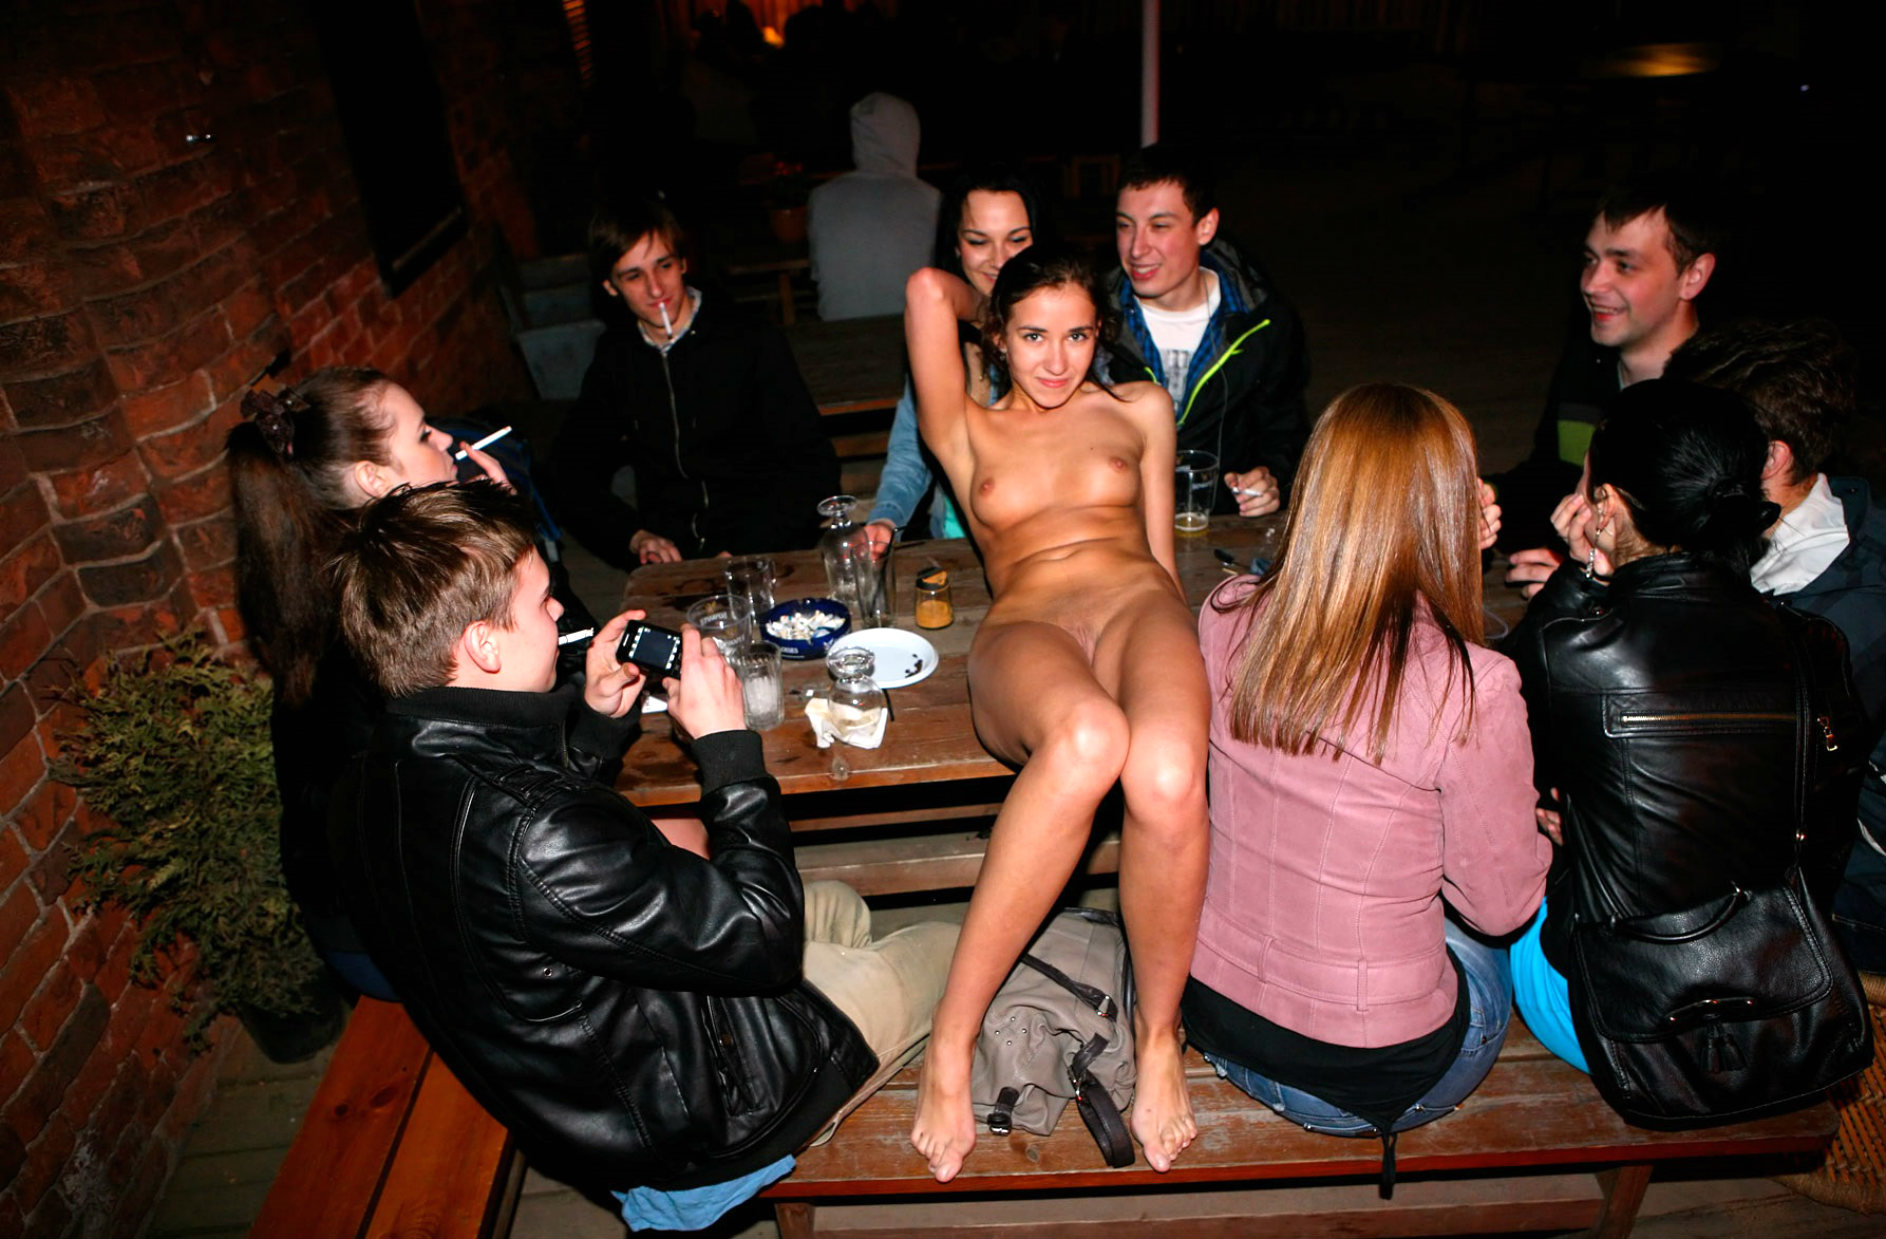 couples-pics-sex-in-a-bar-foggy-udon-lesbain